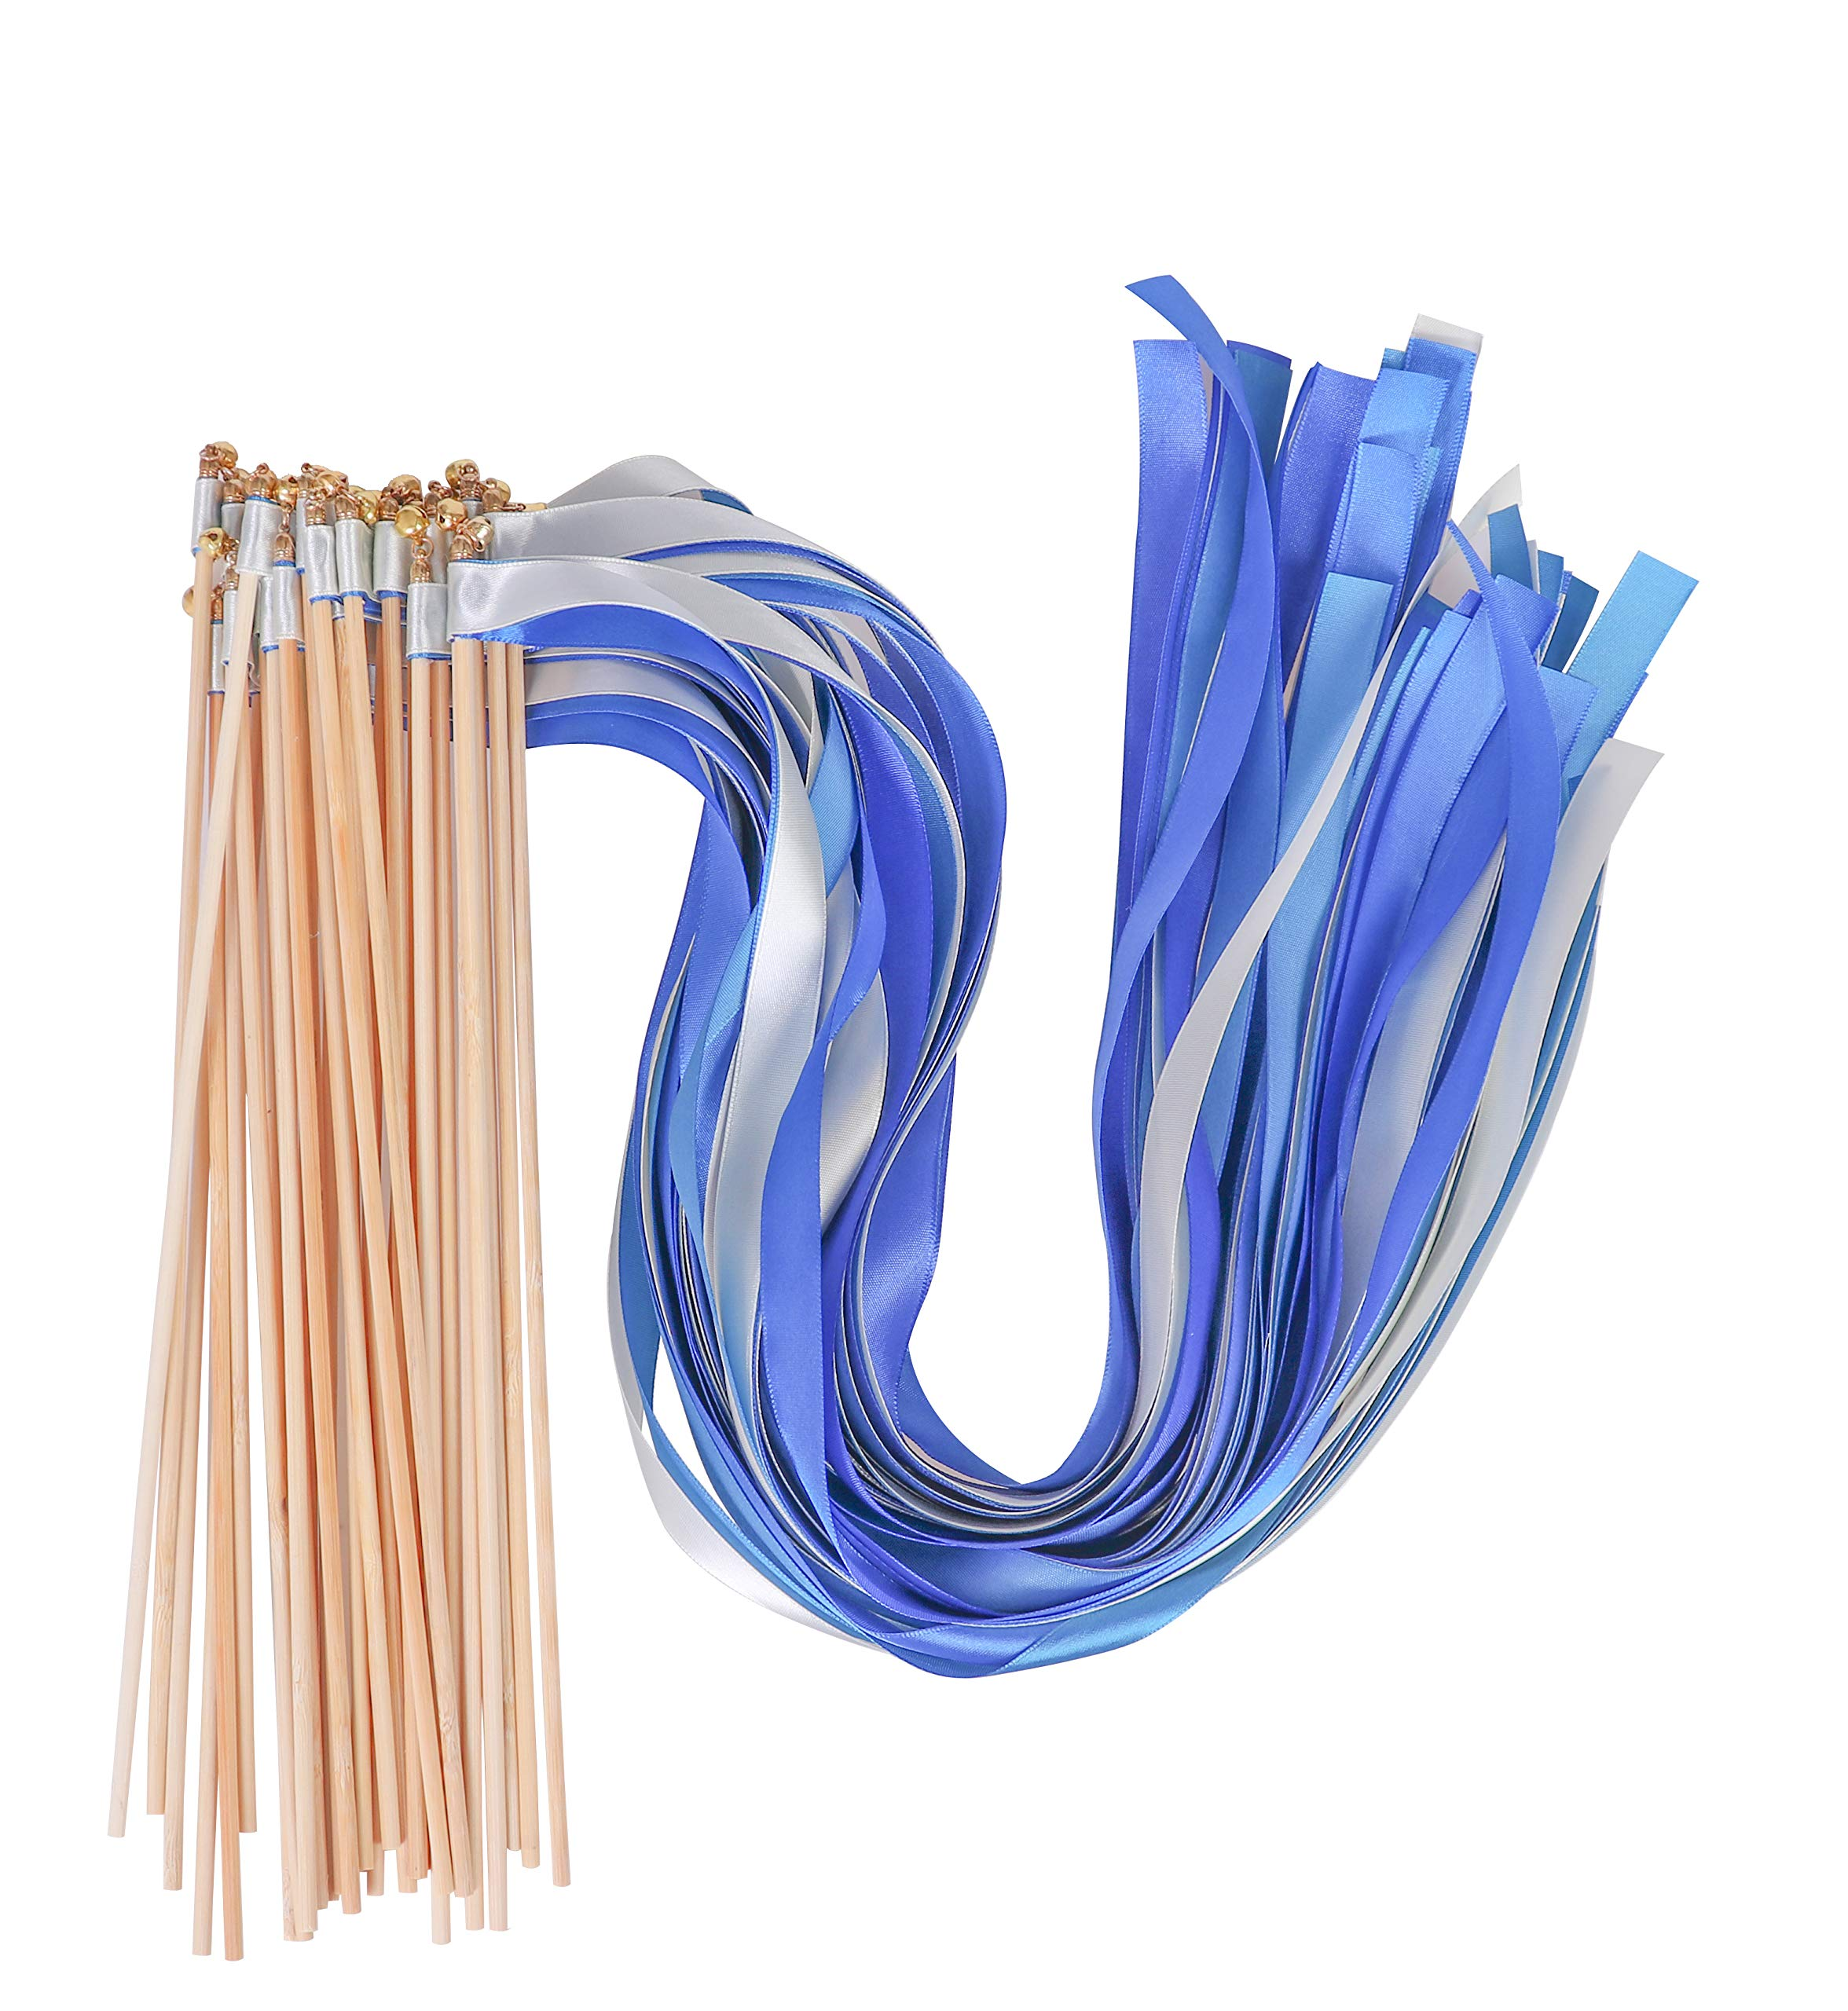 30 Pcs Wishprom Ribbon Wands Bells Fairy Wands Wedding Streamers Stick Party Silk Ribbon Bells Wedding Party Activities (Blue) by LUUDE